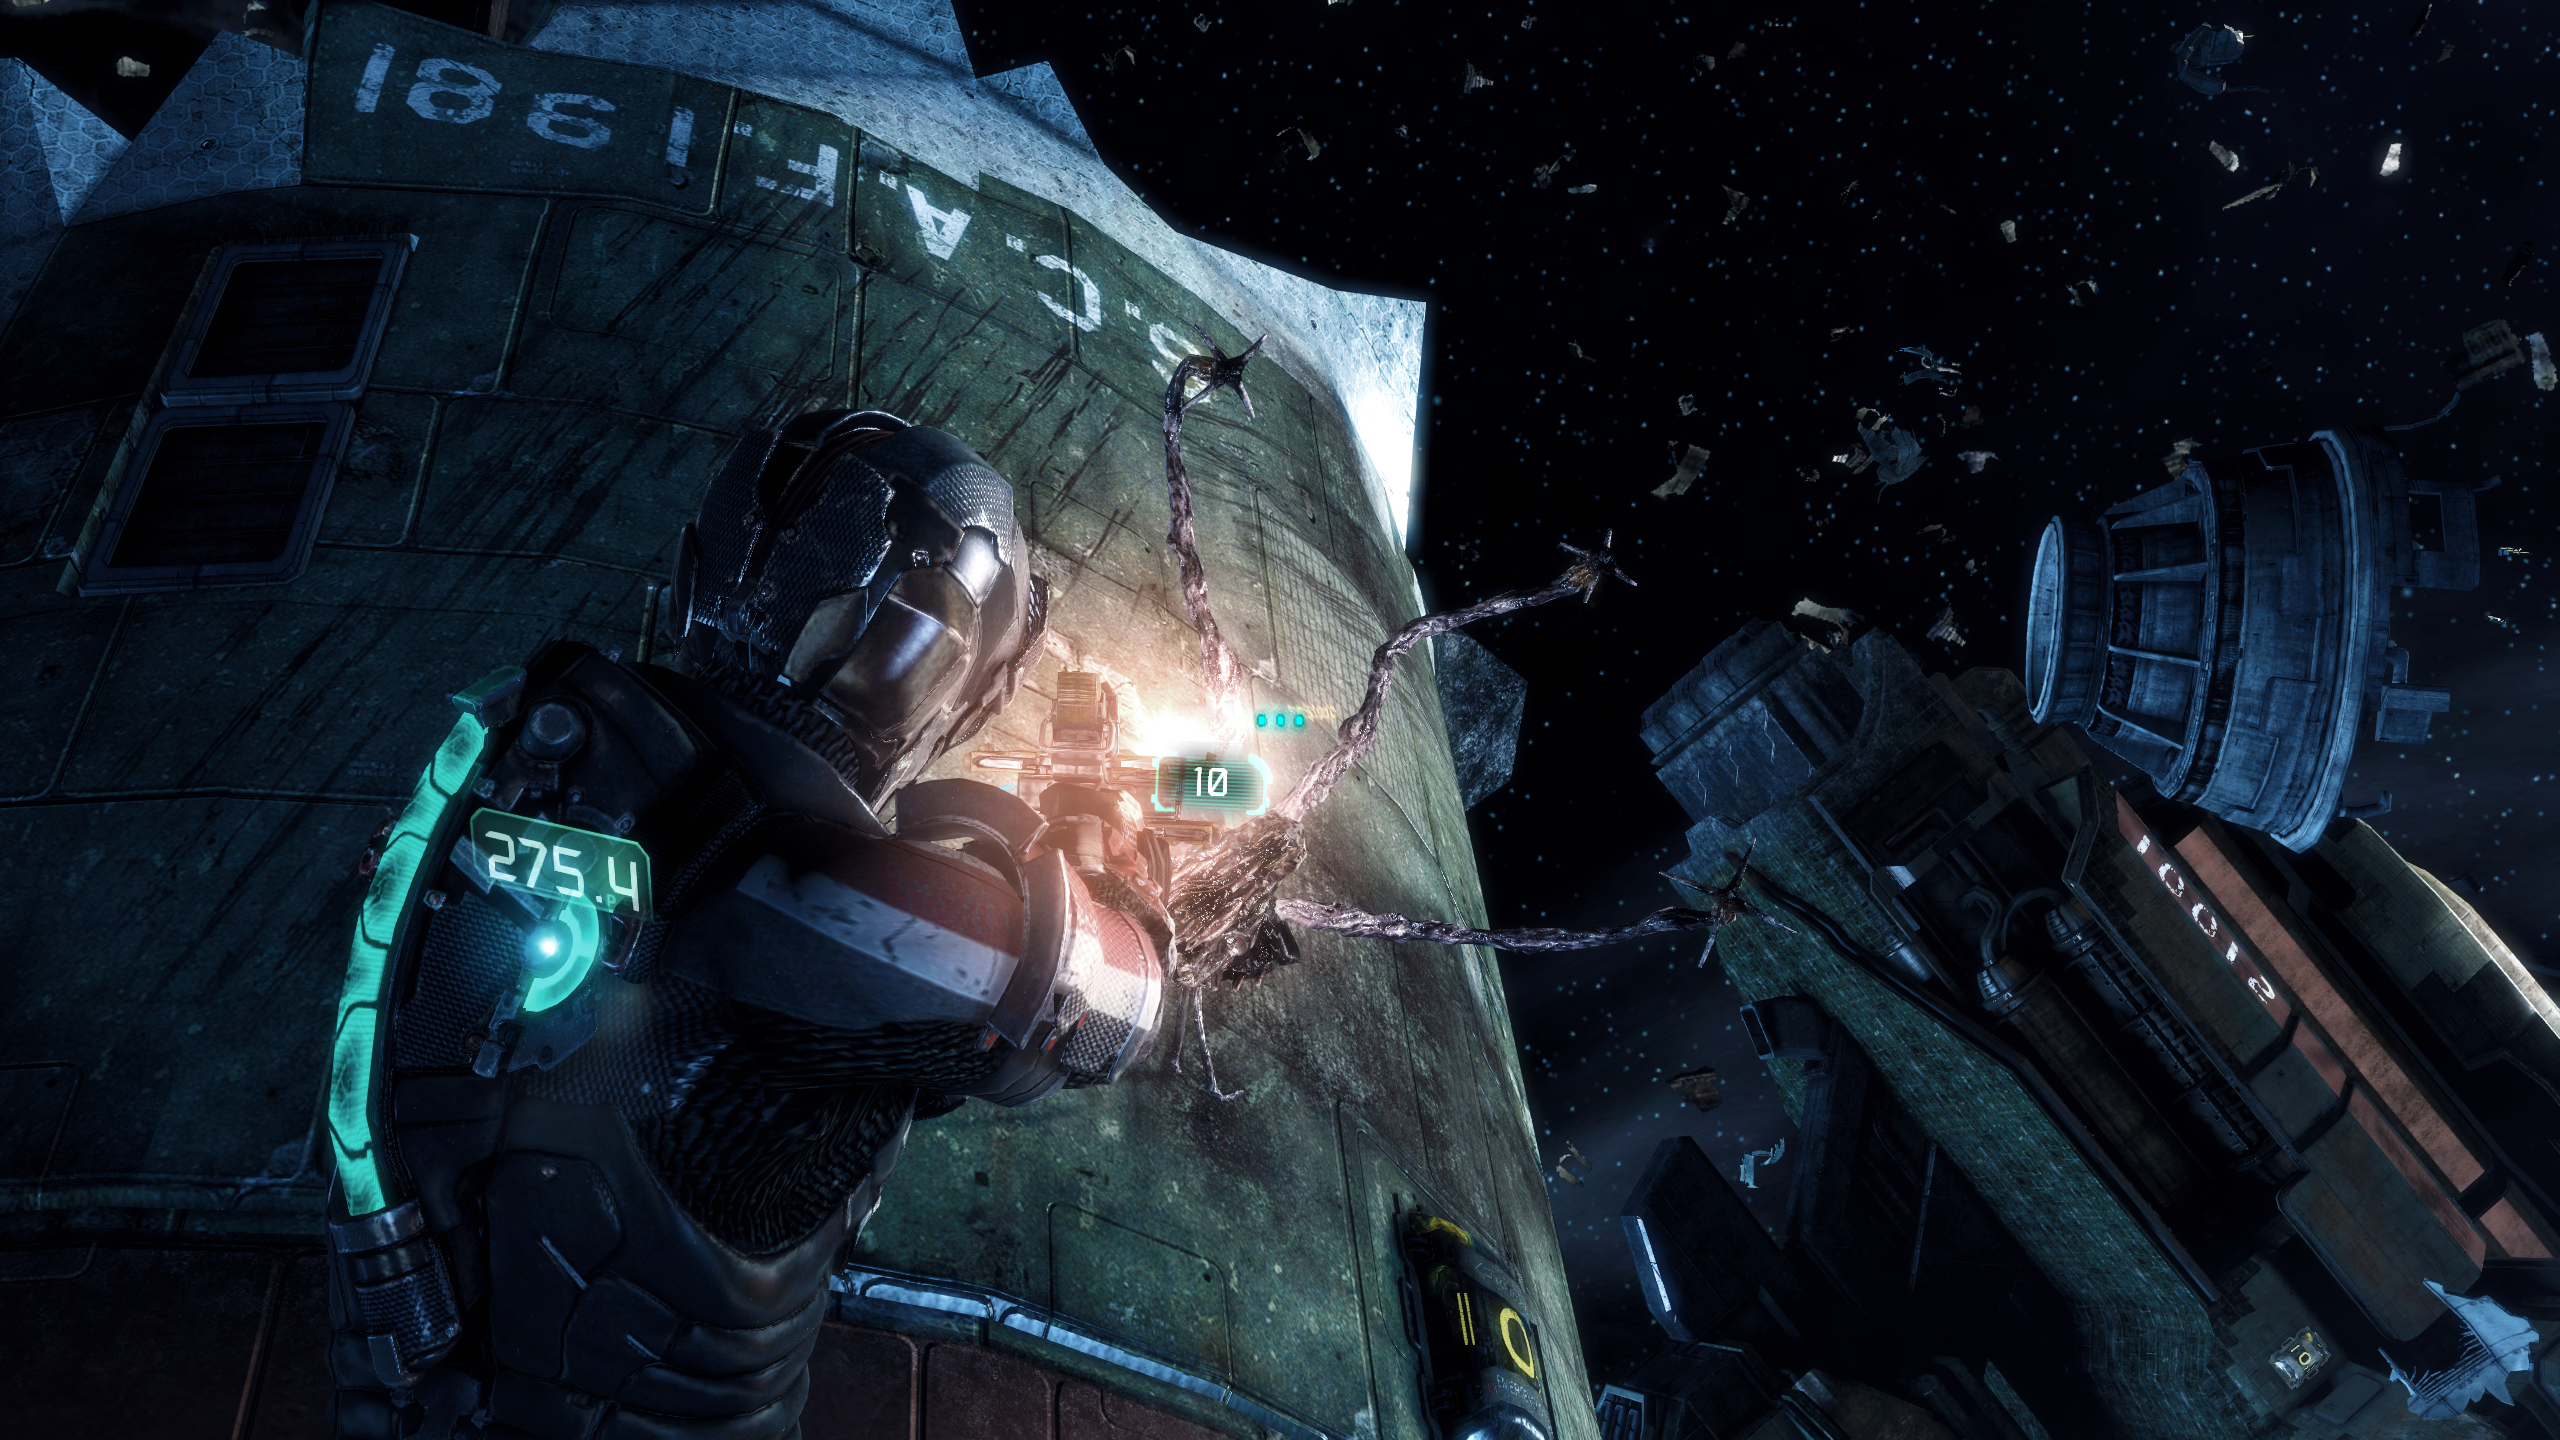 deadspace32013-09-031yqudb.png